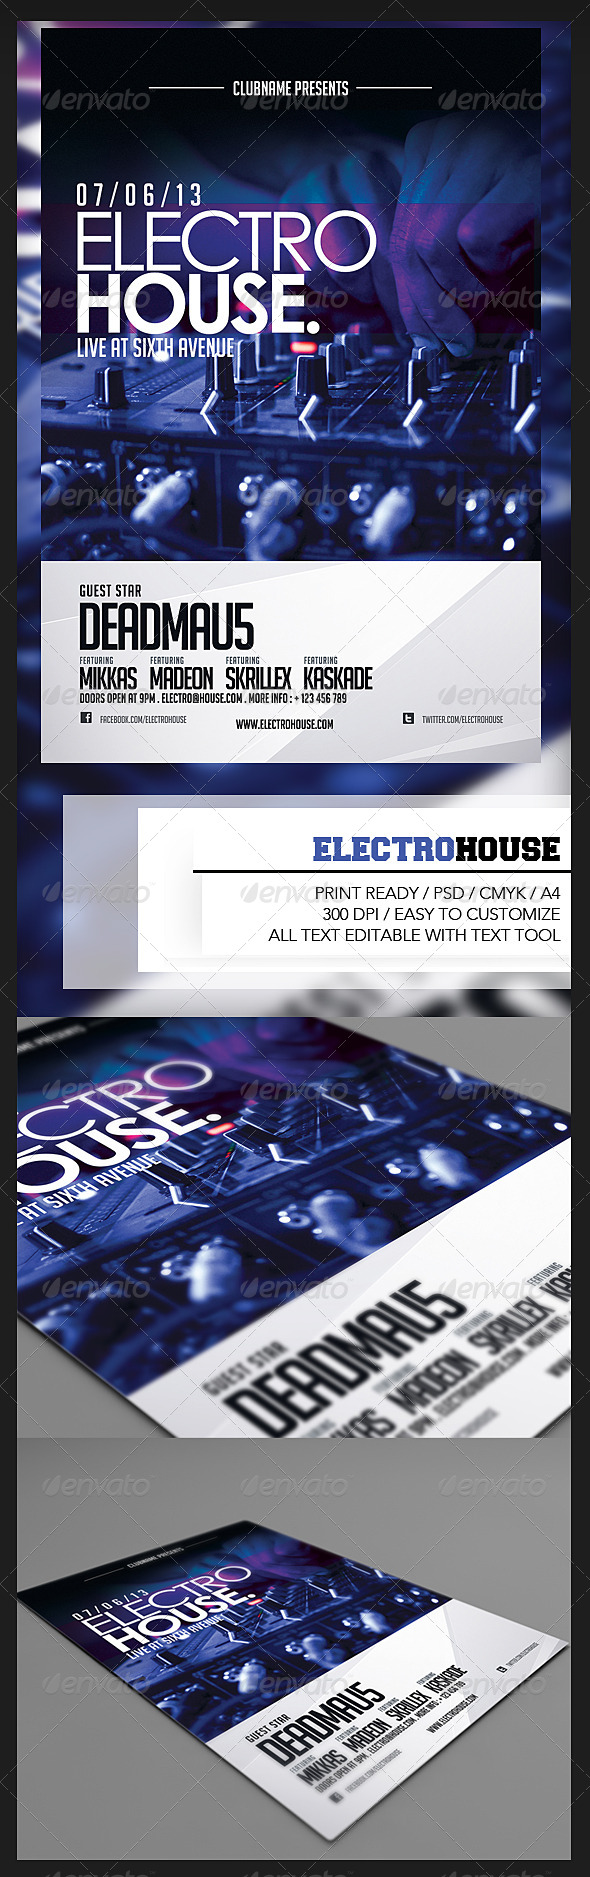 GraphicRiver Electro House Flyer 5005897